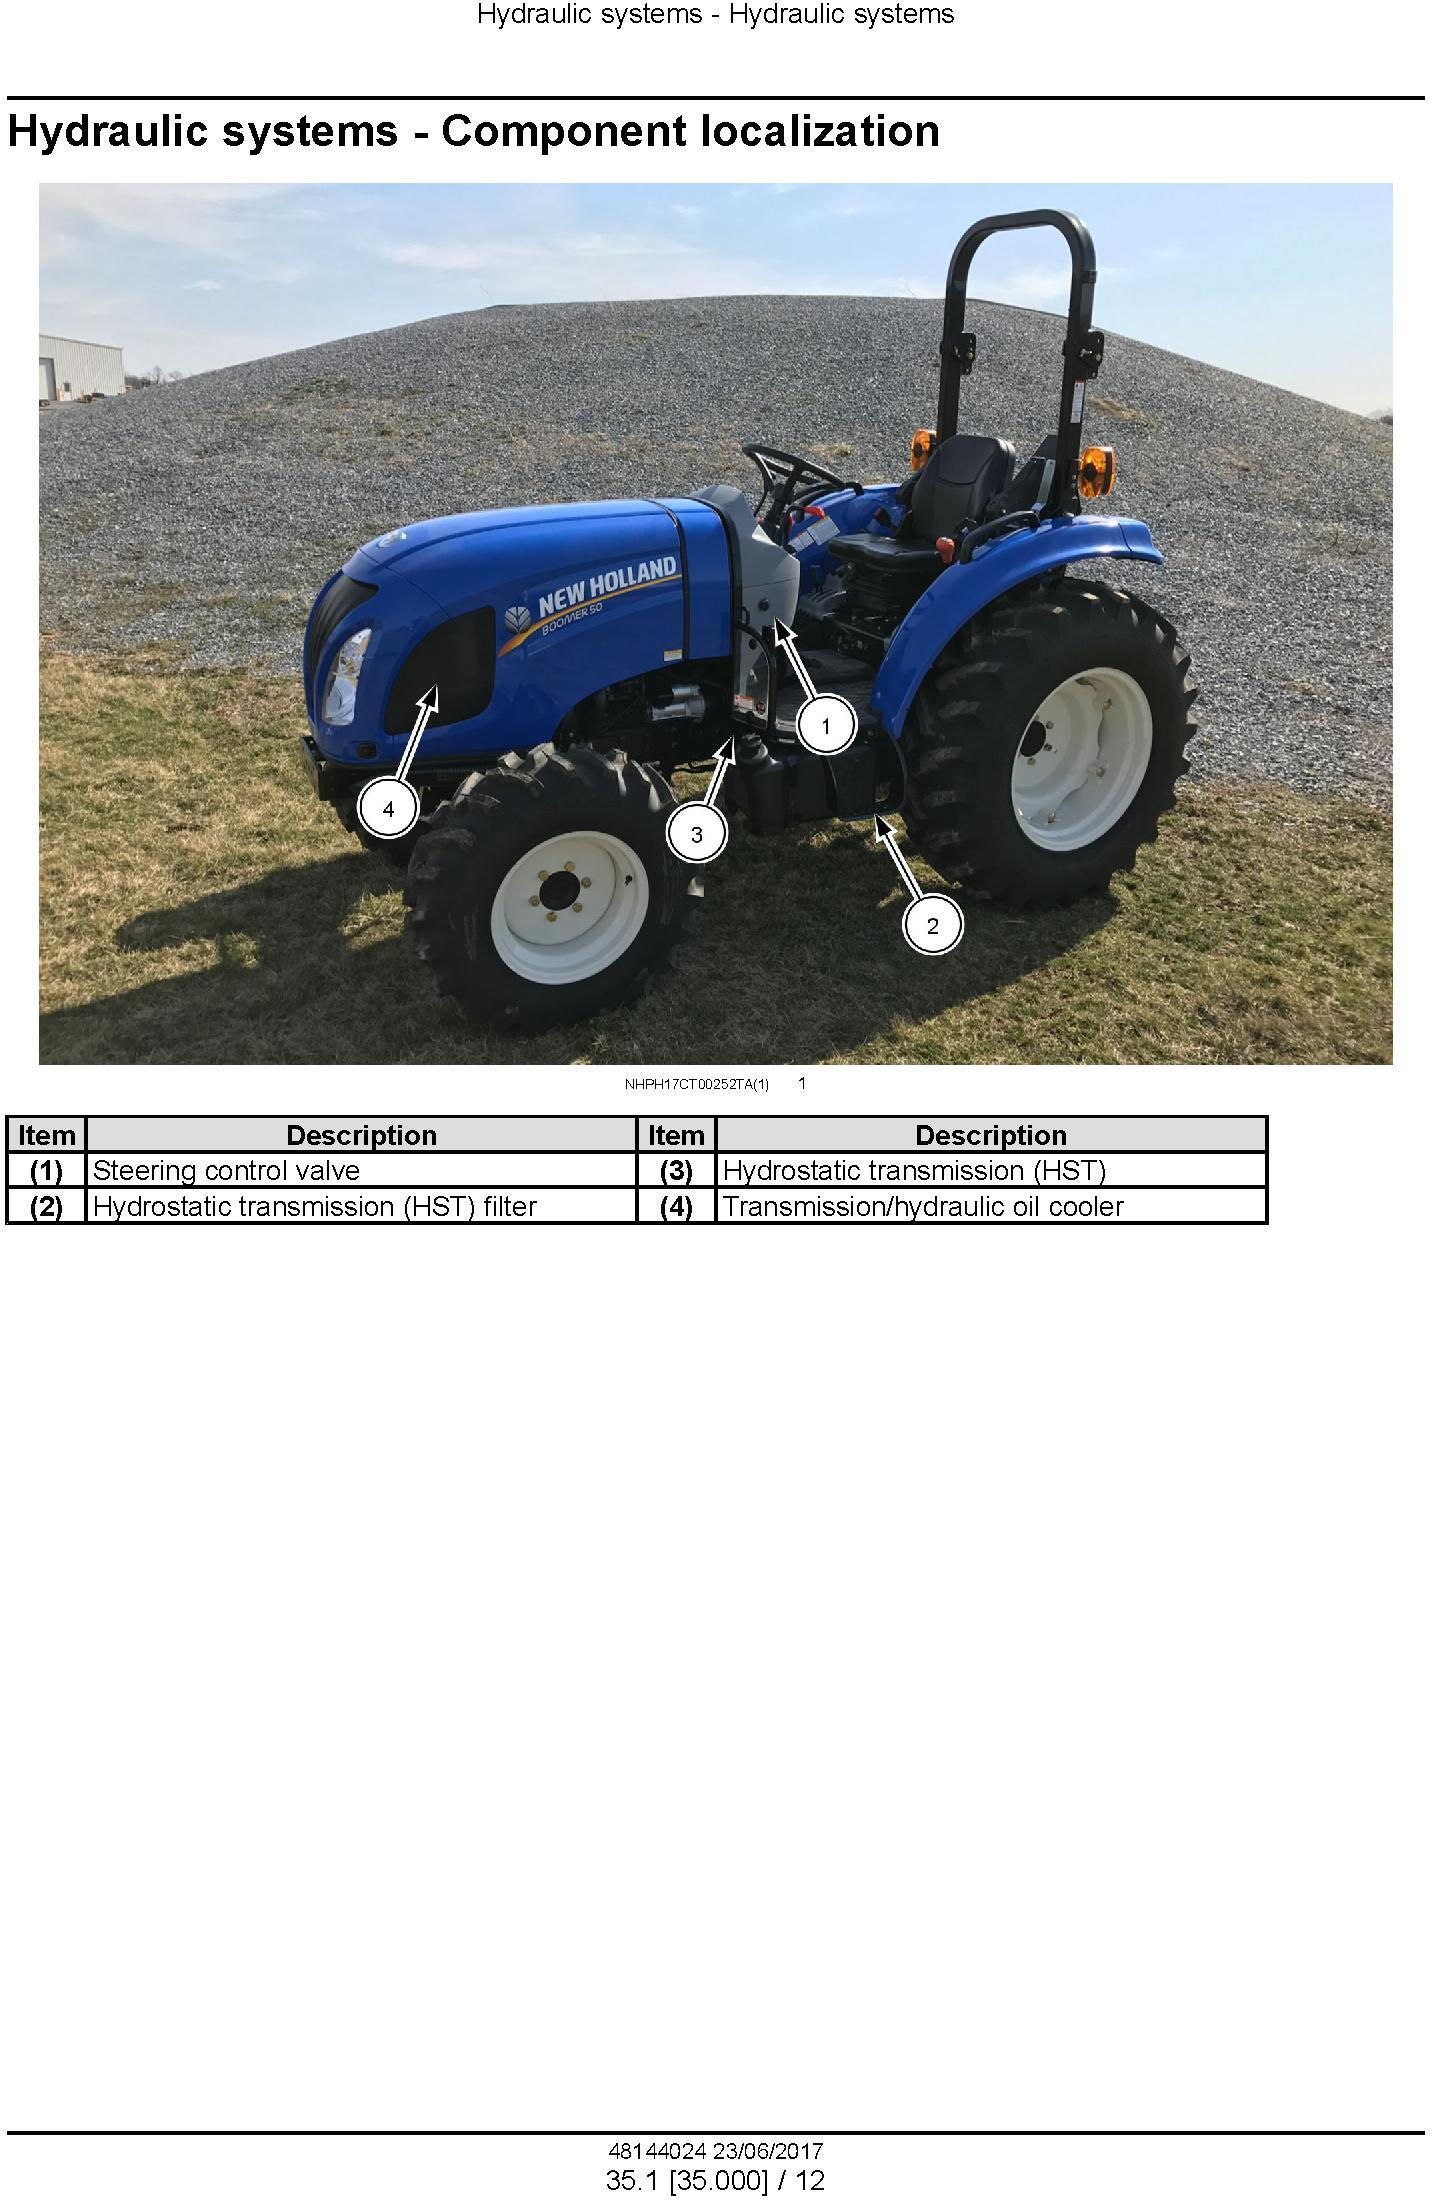 New Holland Workmaster 35, Workmaster 40 ROPS Tier 4B final Compact Tractor Service Manual (USA) - 1